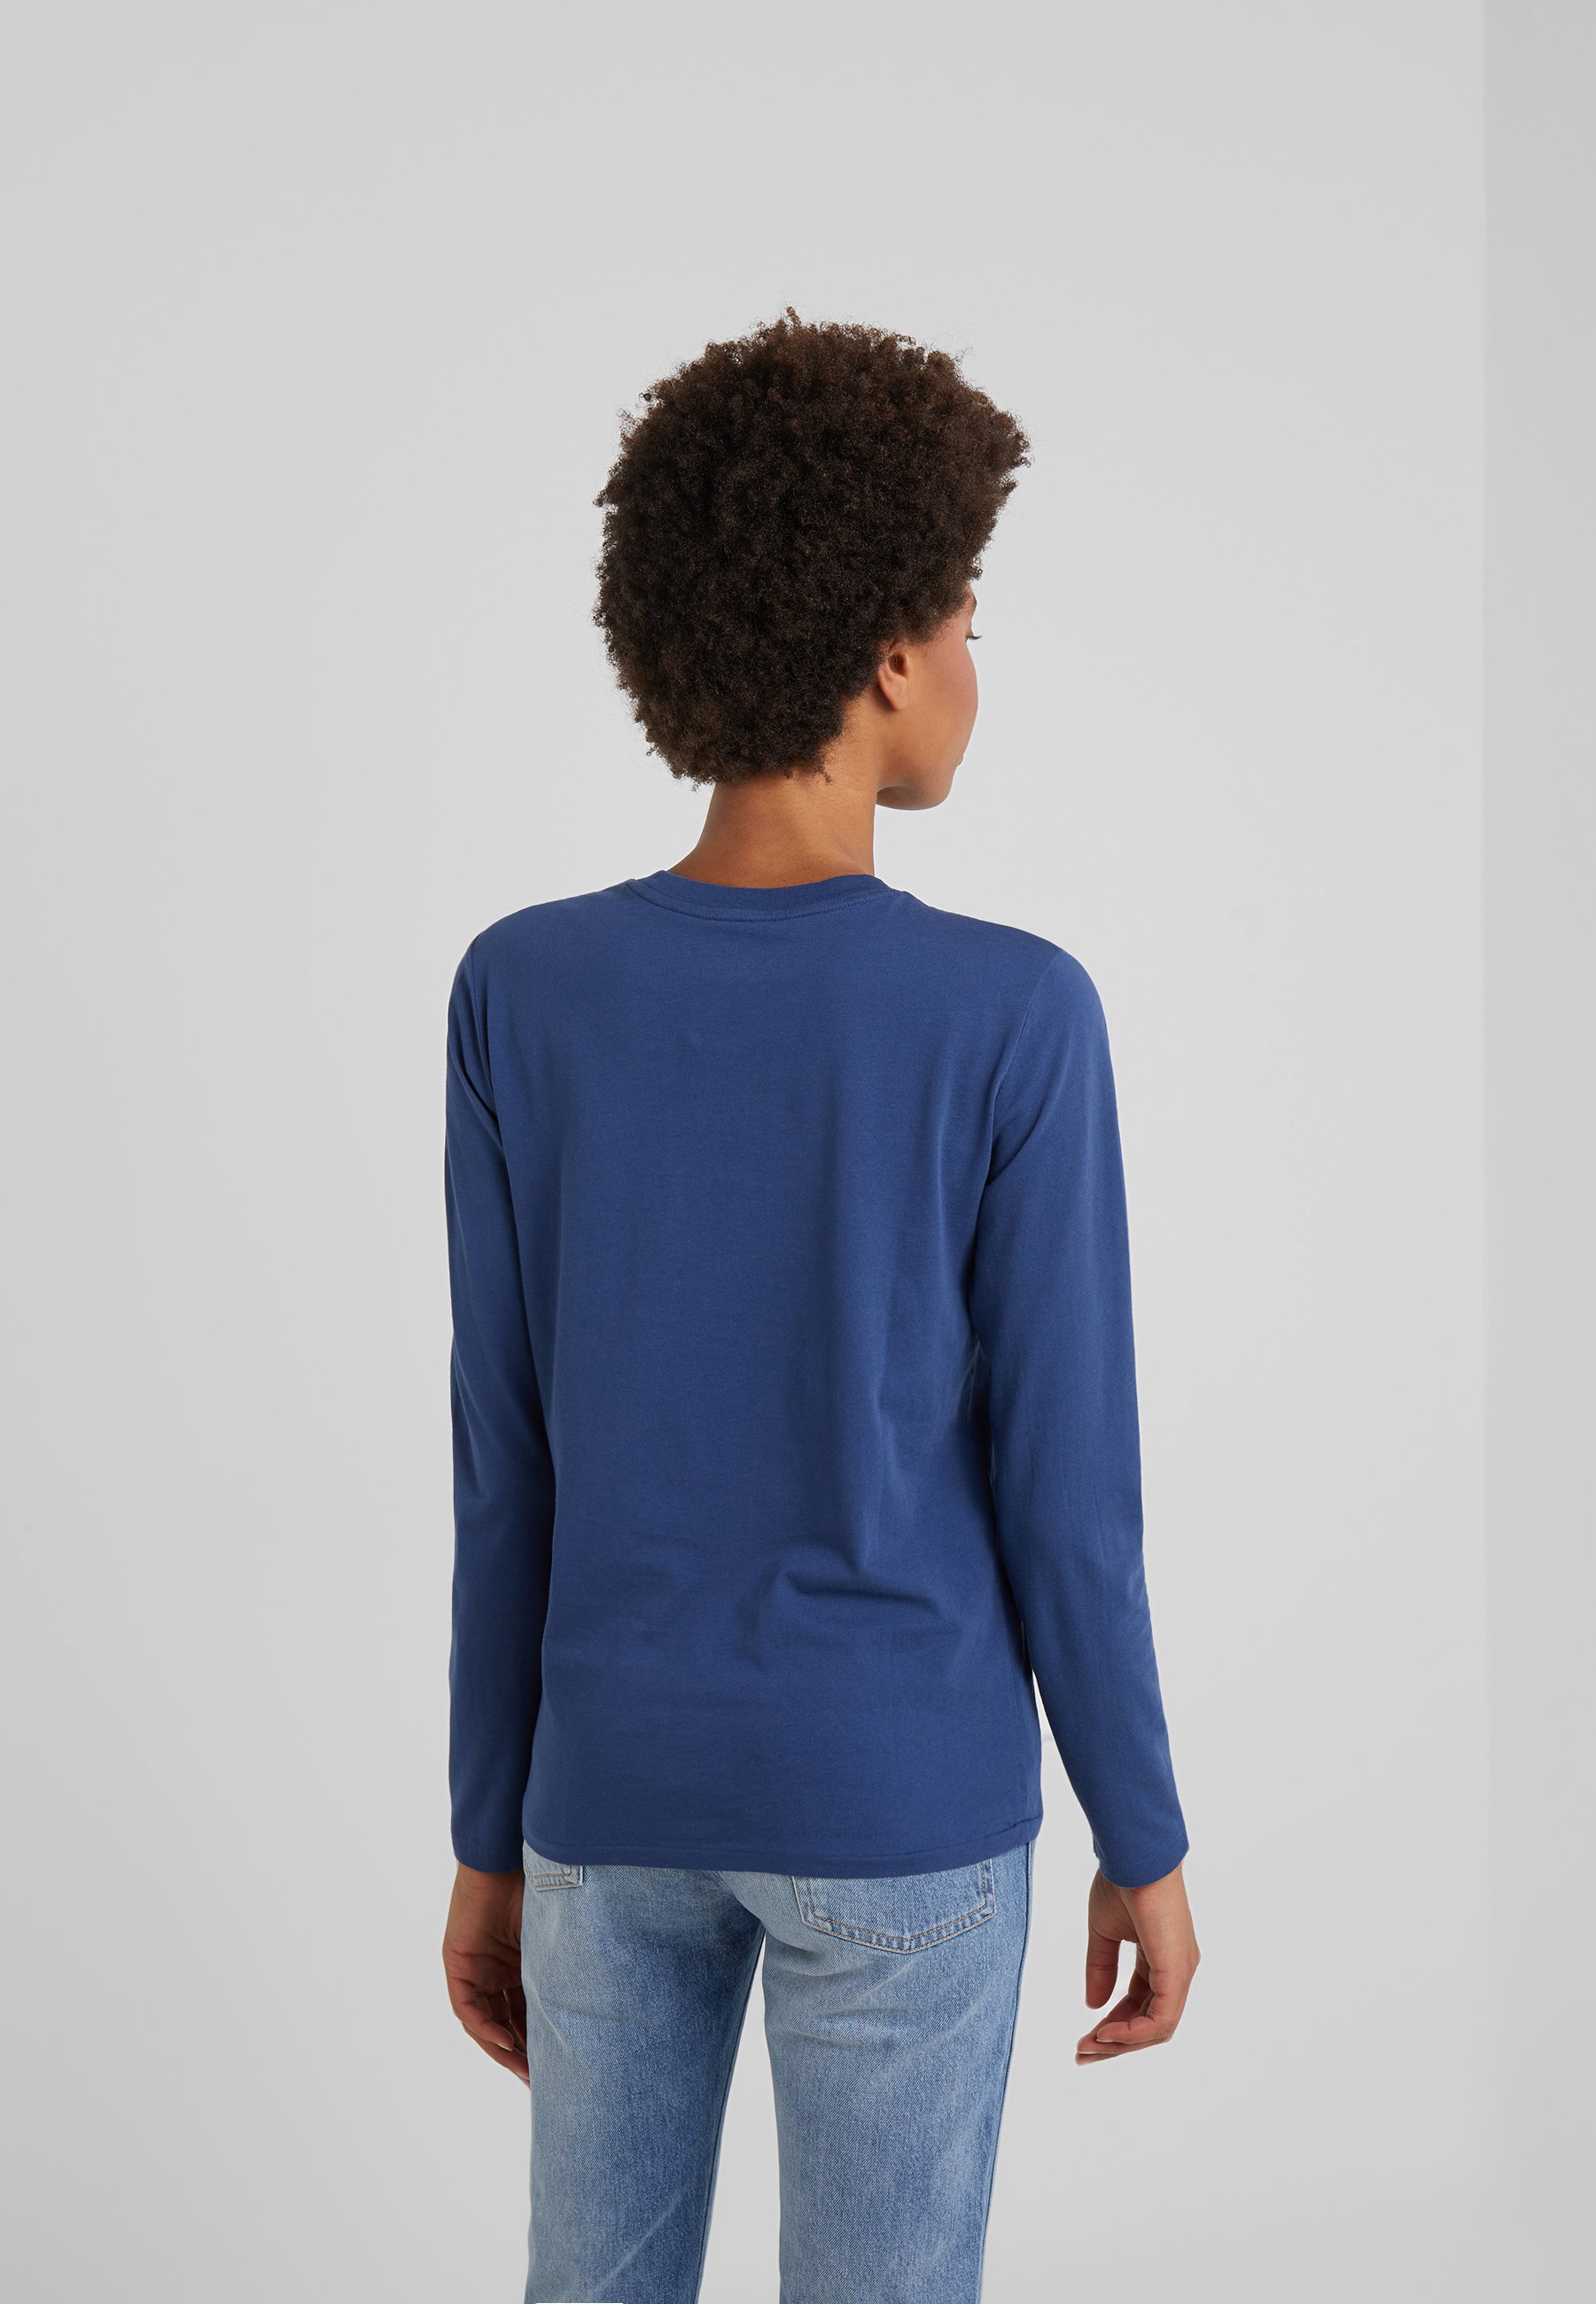 longues à manches rustic navy Lauren Polo Ralph T shirt Y6bf7gy